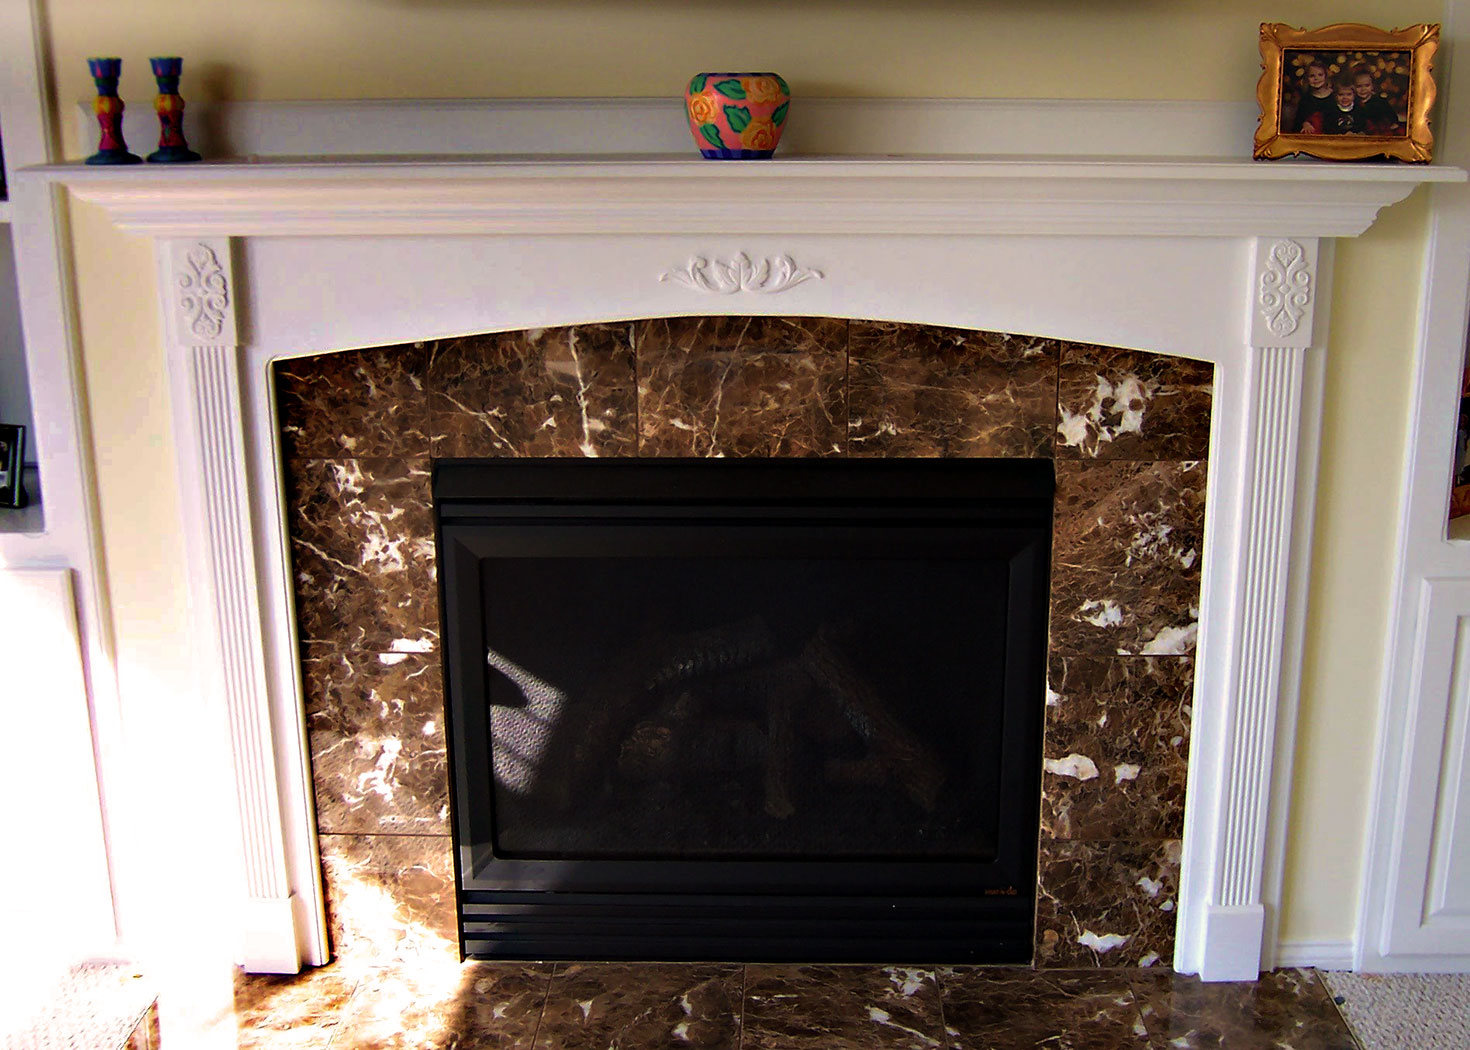 Built-in Shelving & Fireplace Mantel - Craftworks Custom Cabinetry - Rochester, NY